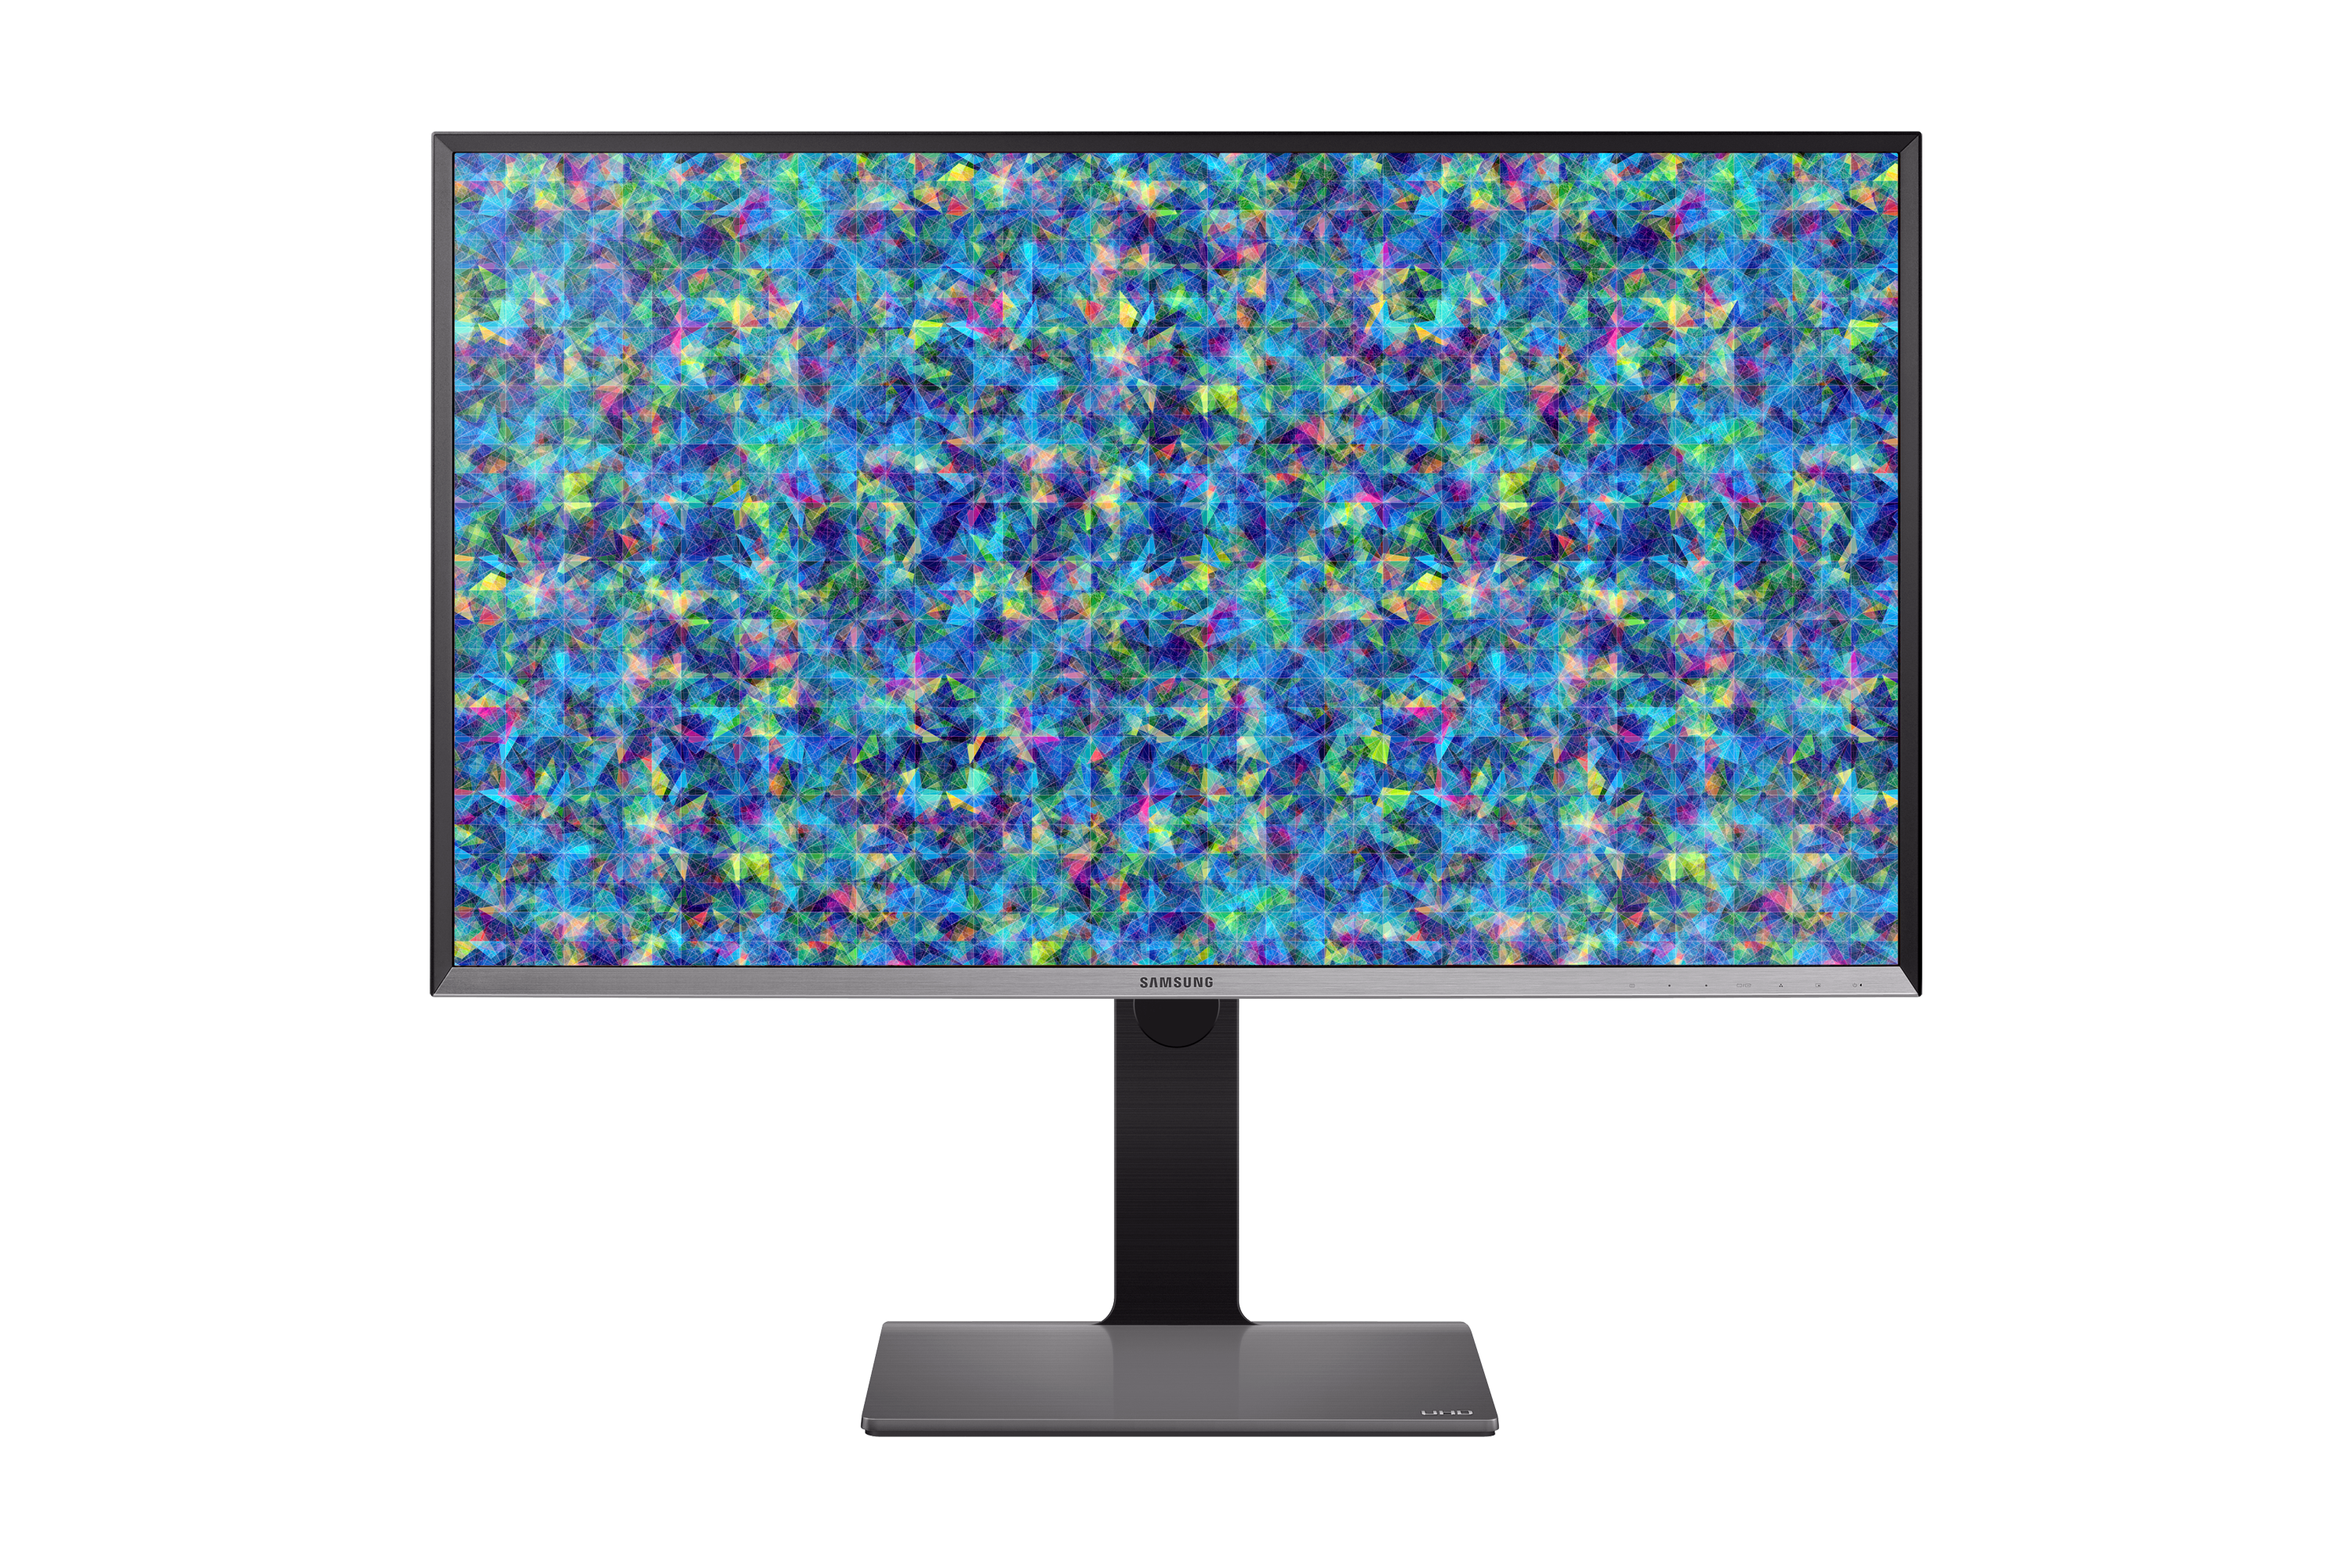 "32"" Professional monitor with accurate Colour presentation"